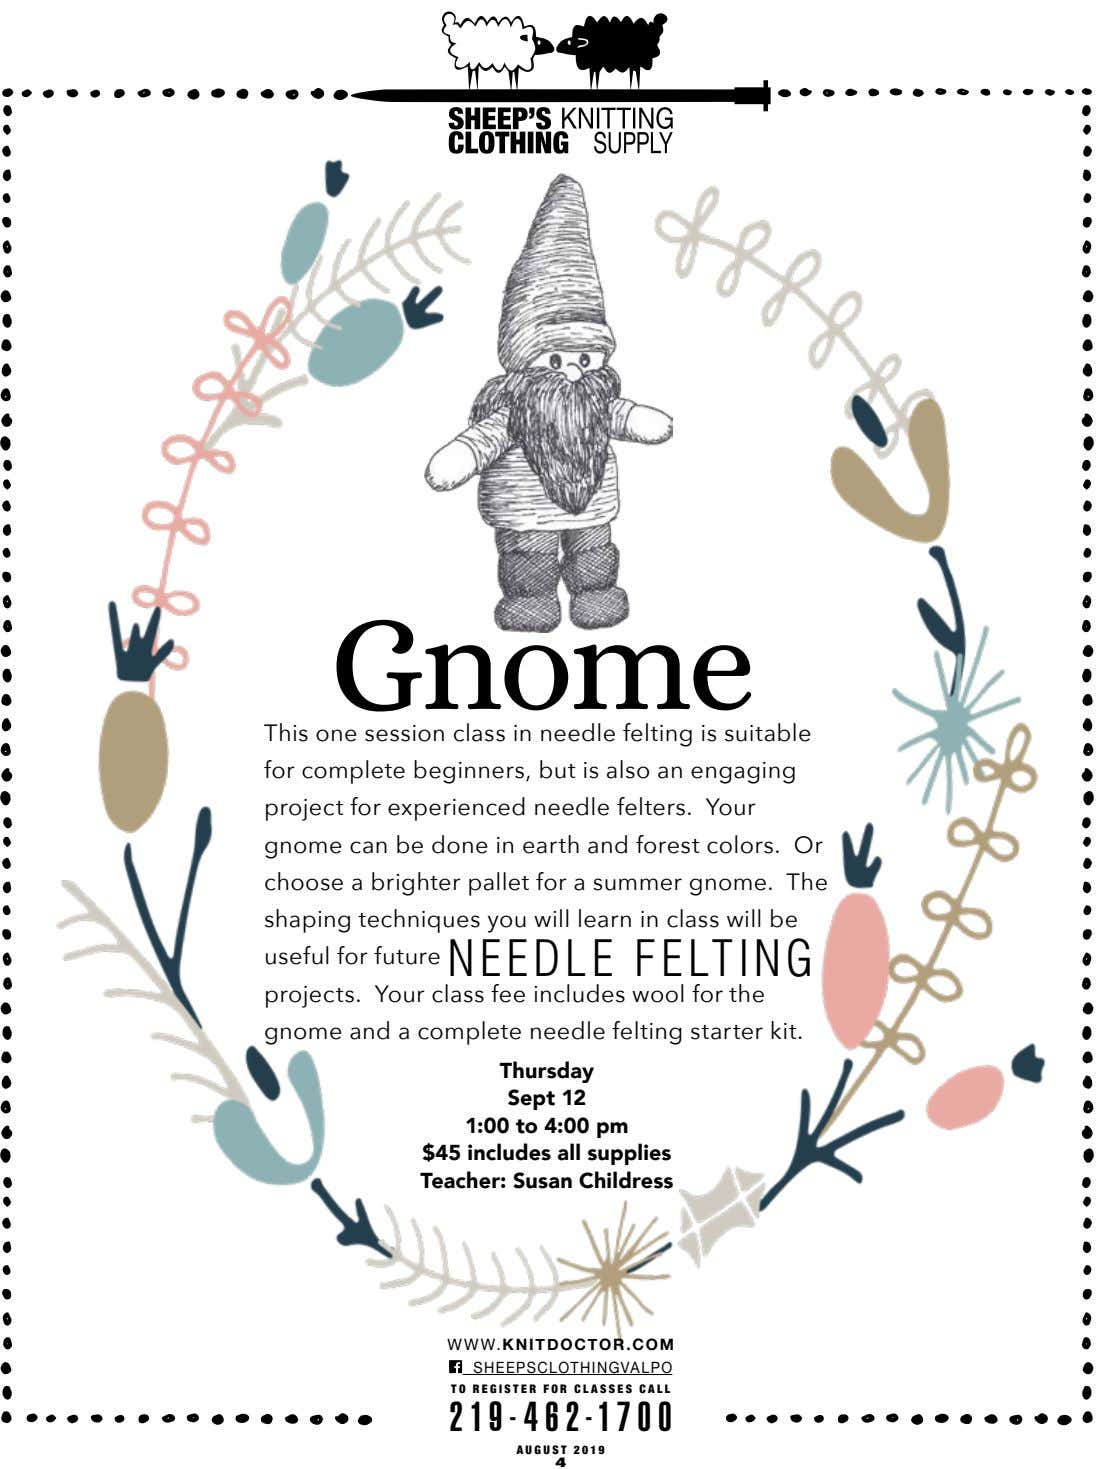 Gnome This one session class in needle felting is suitable for complete beginners, but is